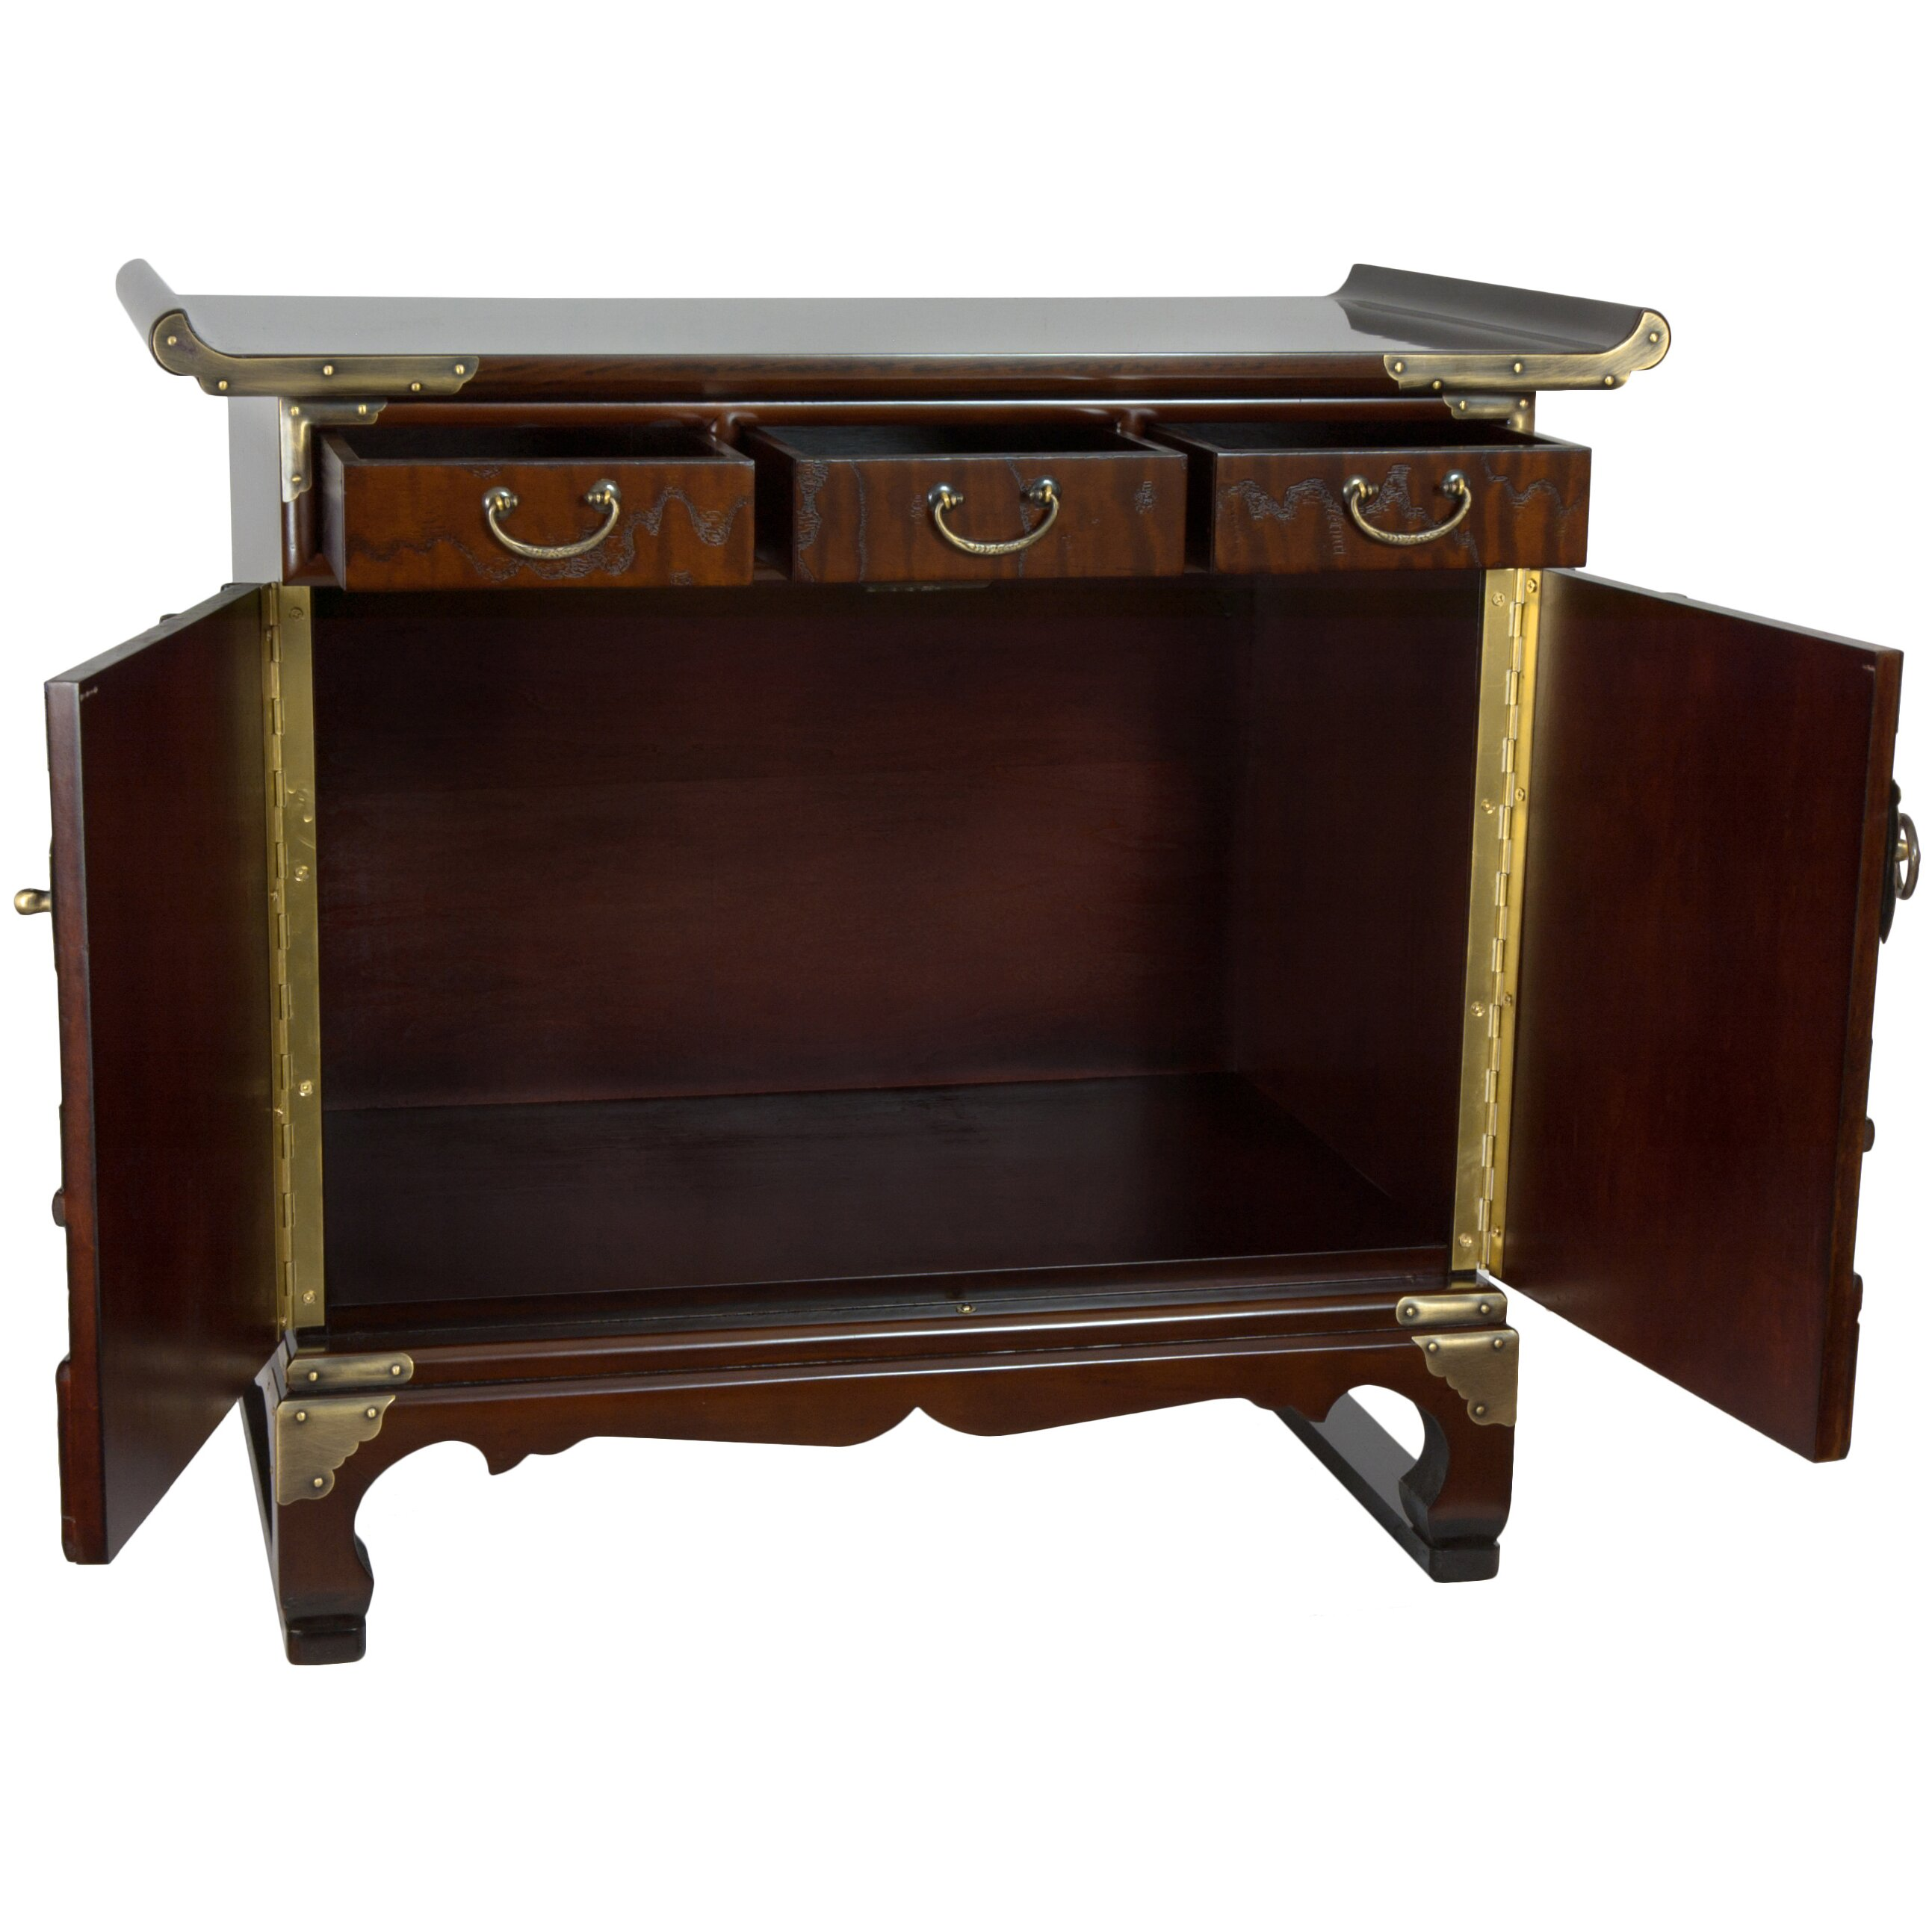 Oriental furniture korean 3 drawer end table cabinet wayfair for Oriental furniture